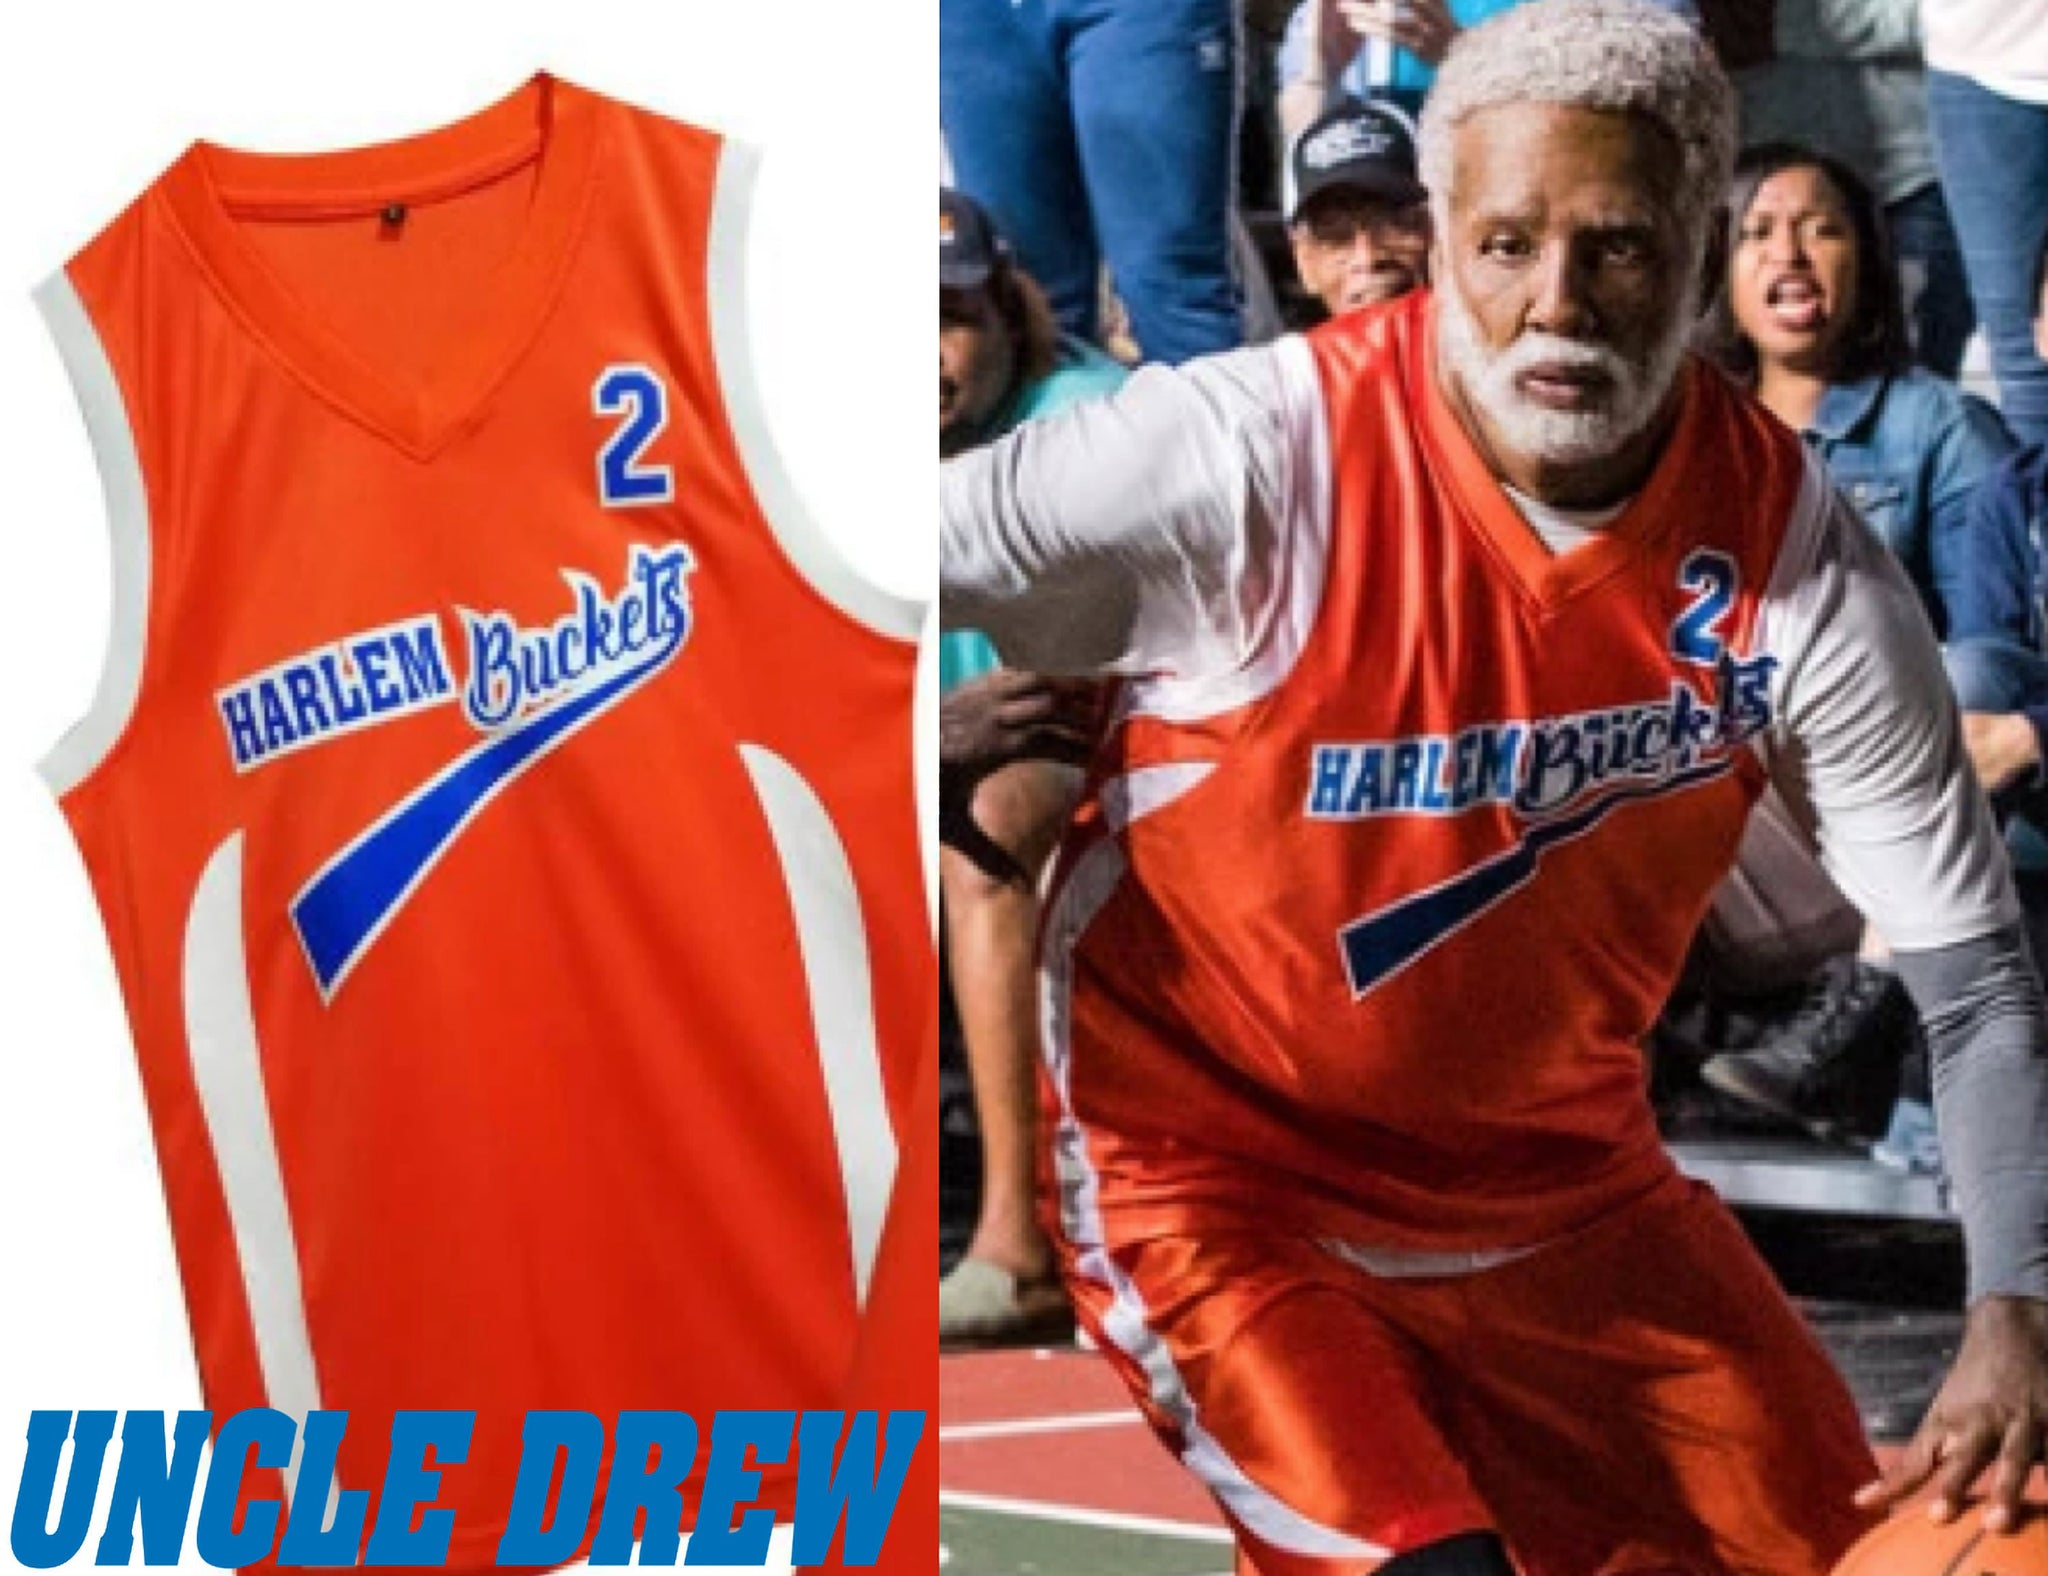 on sale a0952 41012 Uncle Drew Harlem Buckets Movie #2 Basketball Jersey | Custom Throwback  Retro Movie Jersey